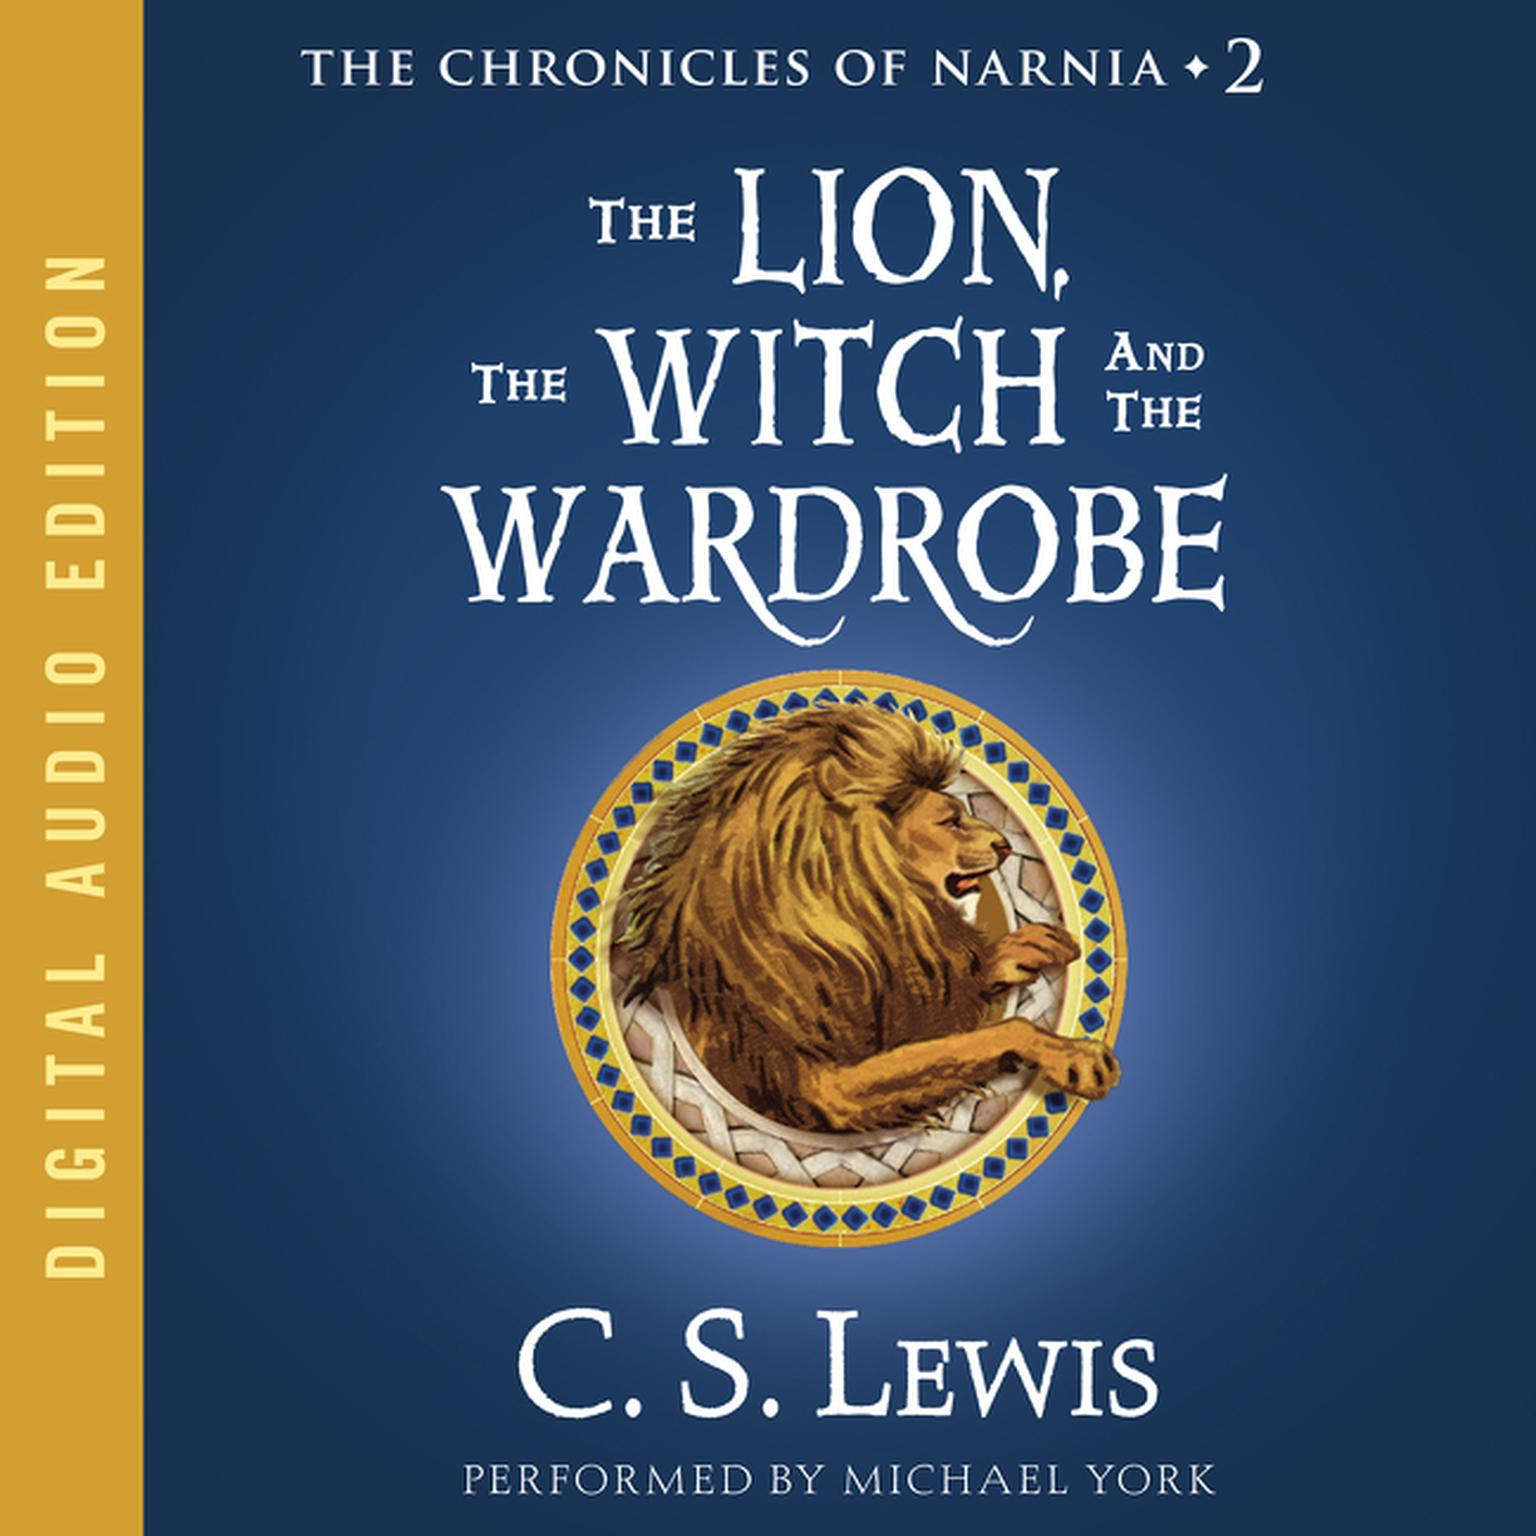 The Lion, the Witch and the Wardrobe (HarperAudio)